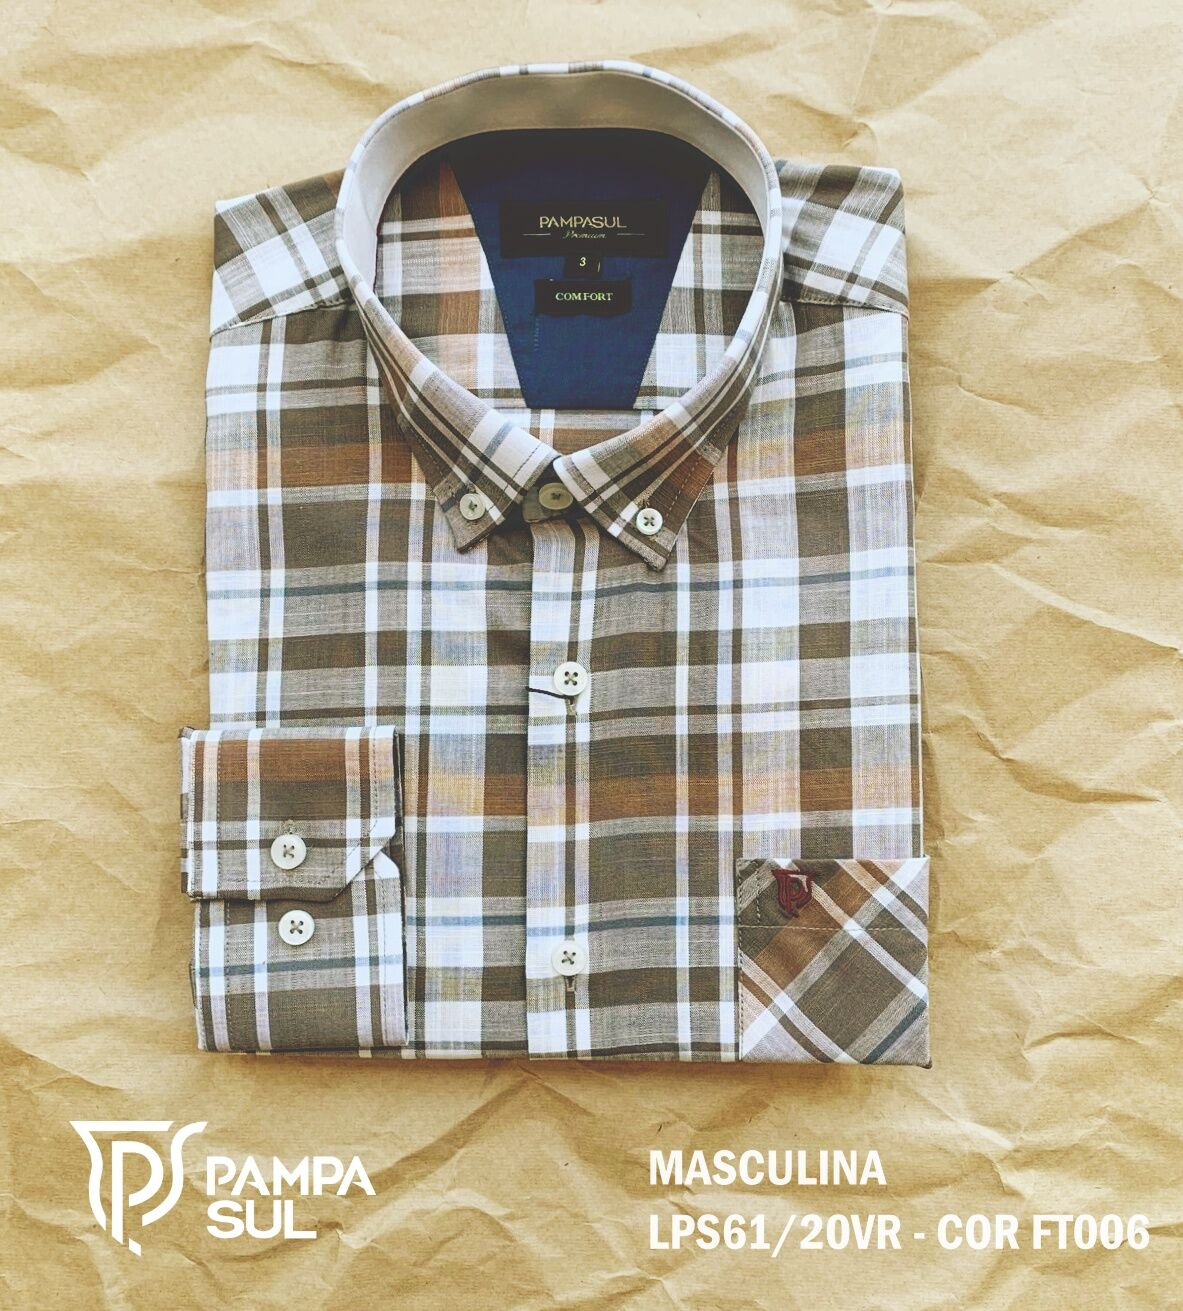 Camisa Pampa Sul Masculina Slim Confort LPS 61/20